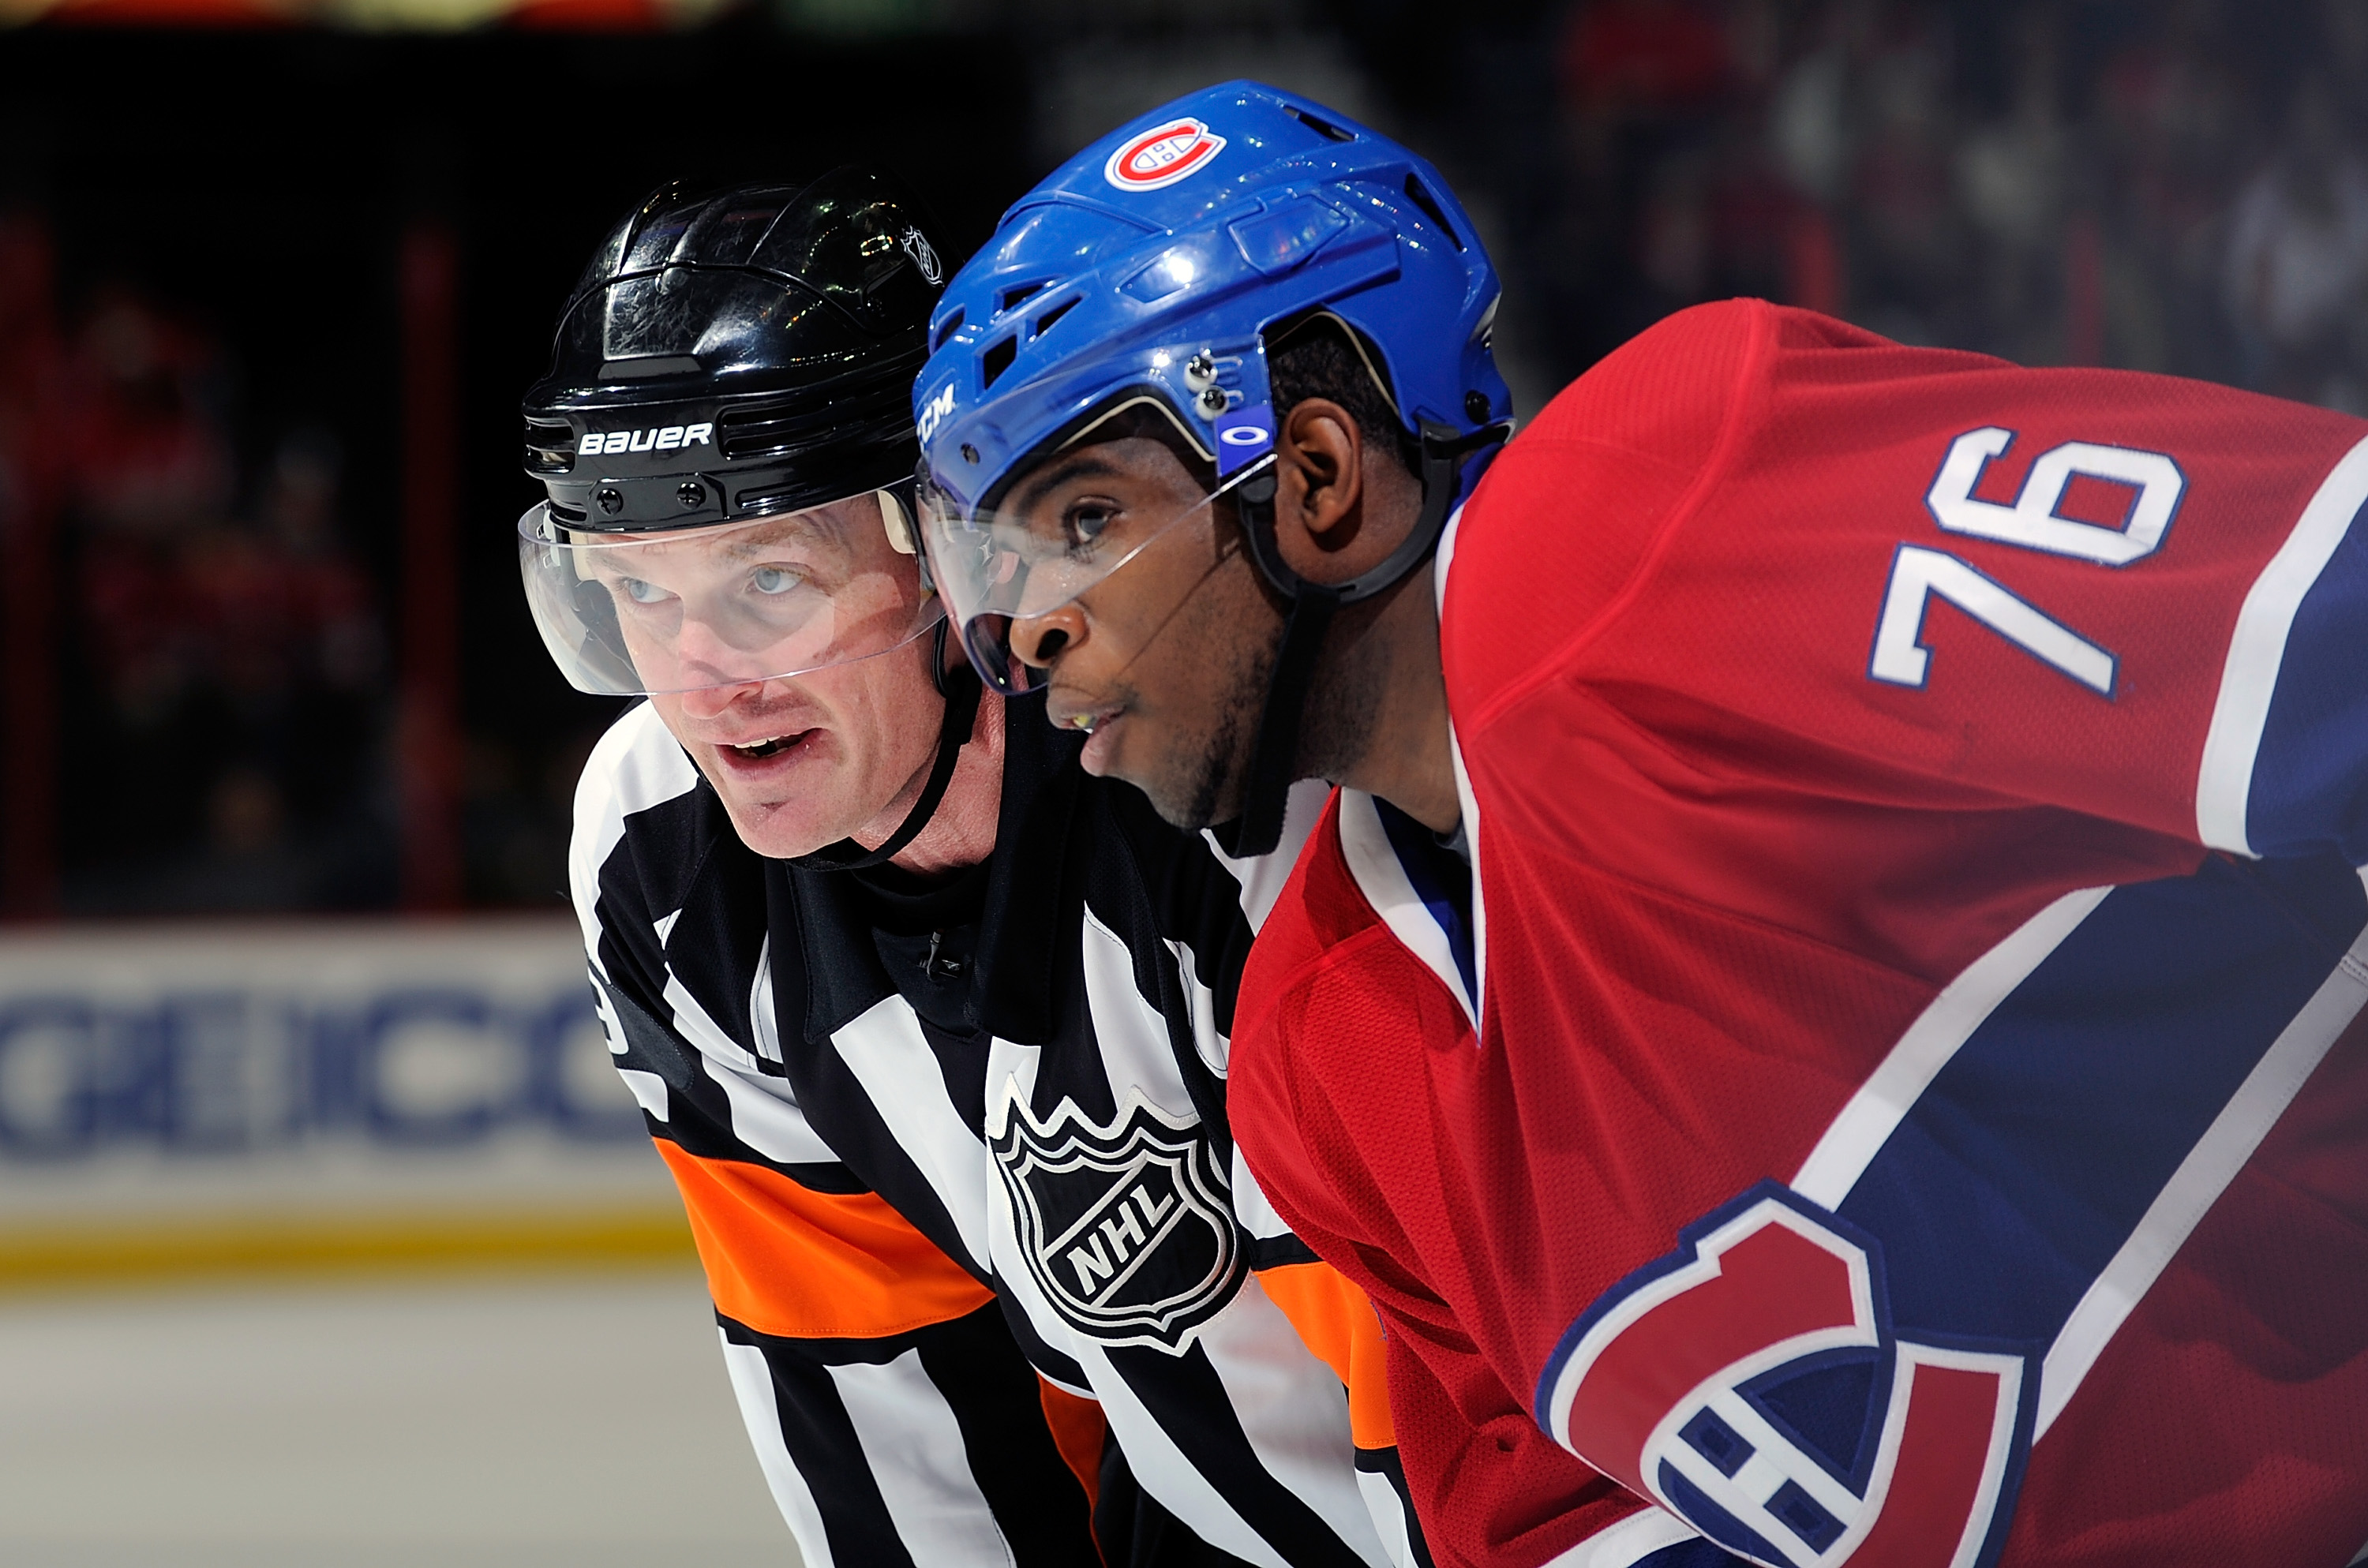 WASHINGTON, DC - FEBRUARY 01:  P.K. Subban #76 of the Montreal Canadiens talks with referee Dan O'Rourke during the game against the Washington Capitals at the Verizon Center on February 1, 2011 in Washington, DC.  (Photo by Greg Fiume/Getty Images)